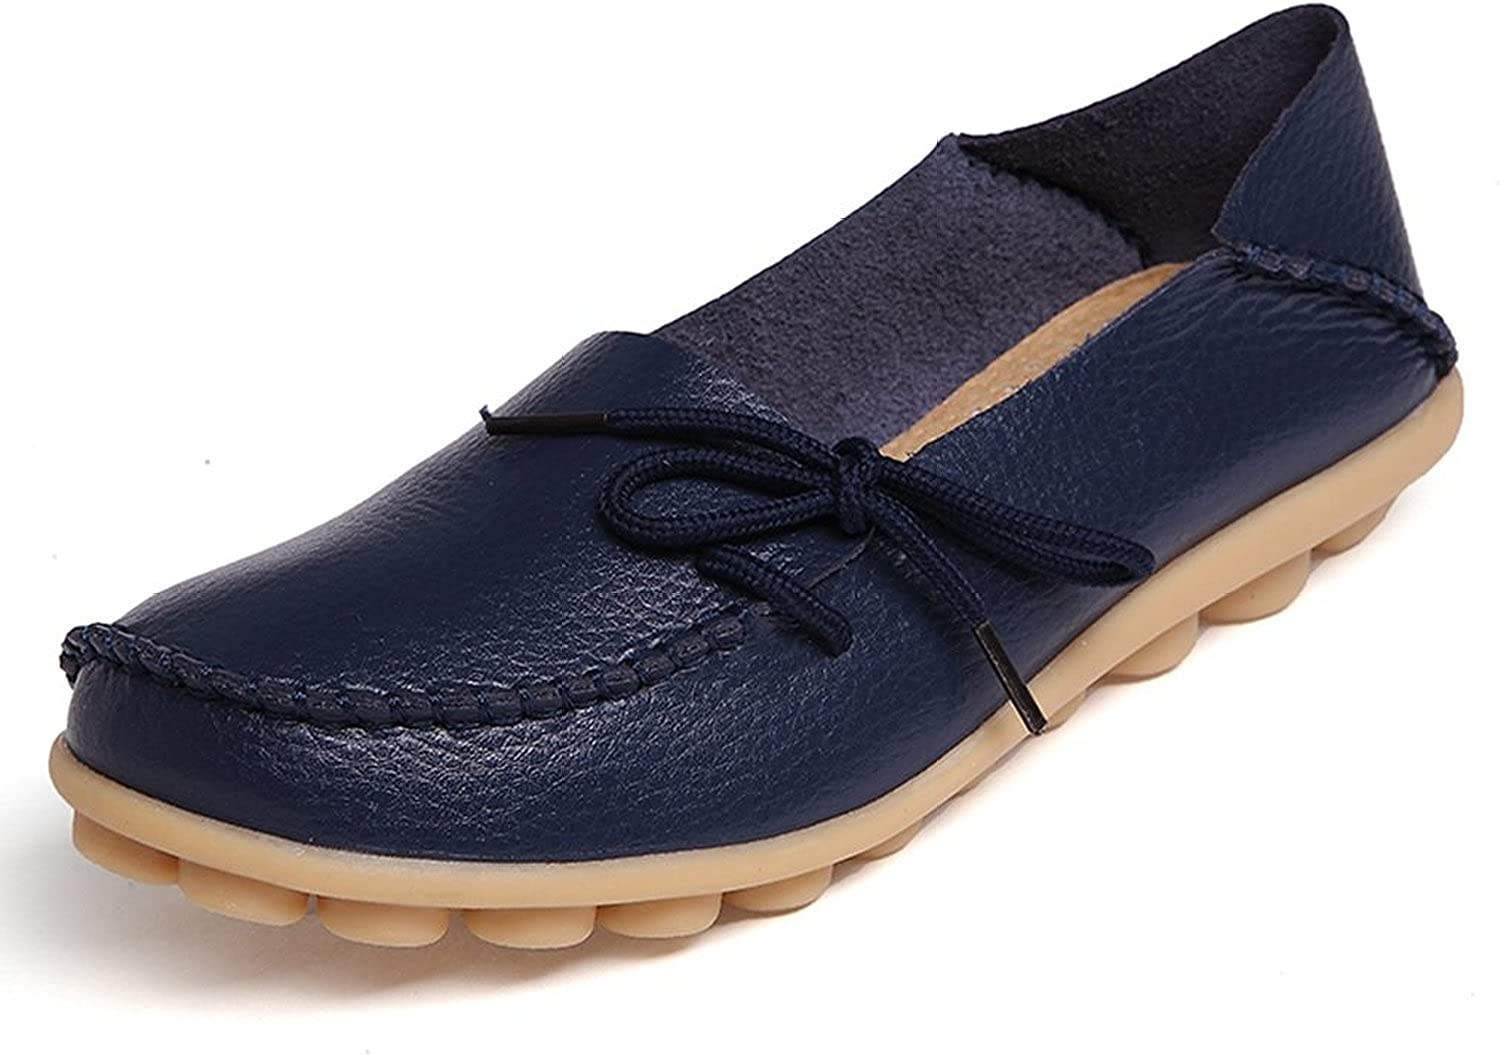 WenHong Womens Driving Shoes Cowhide Leather Lace-Up Loafers Boat Shoes Flats